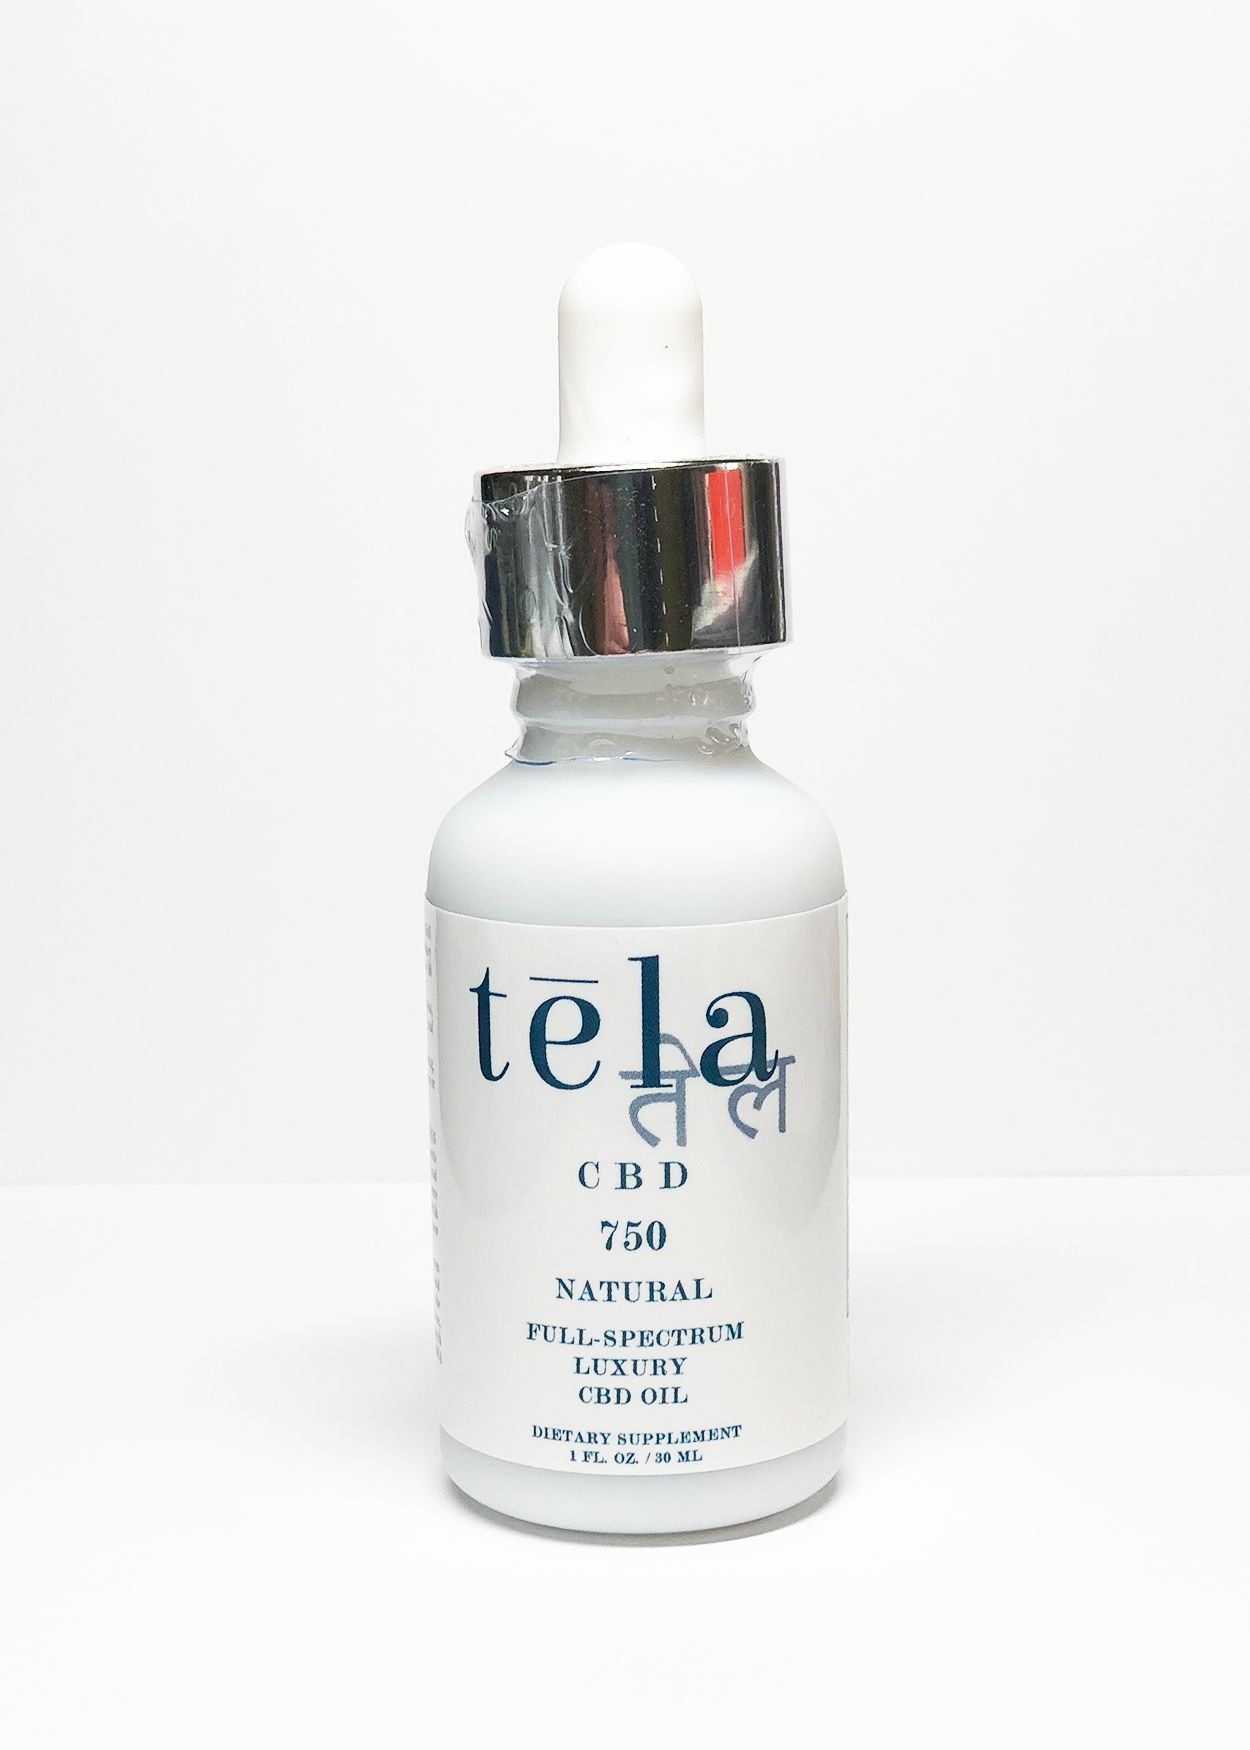 Tela Luxury CBD Oil 750 mg Natural